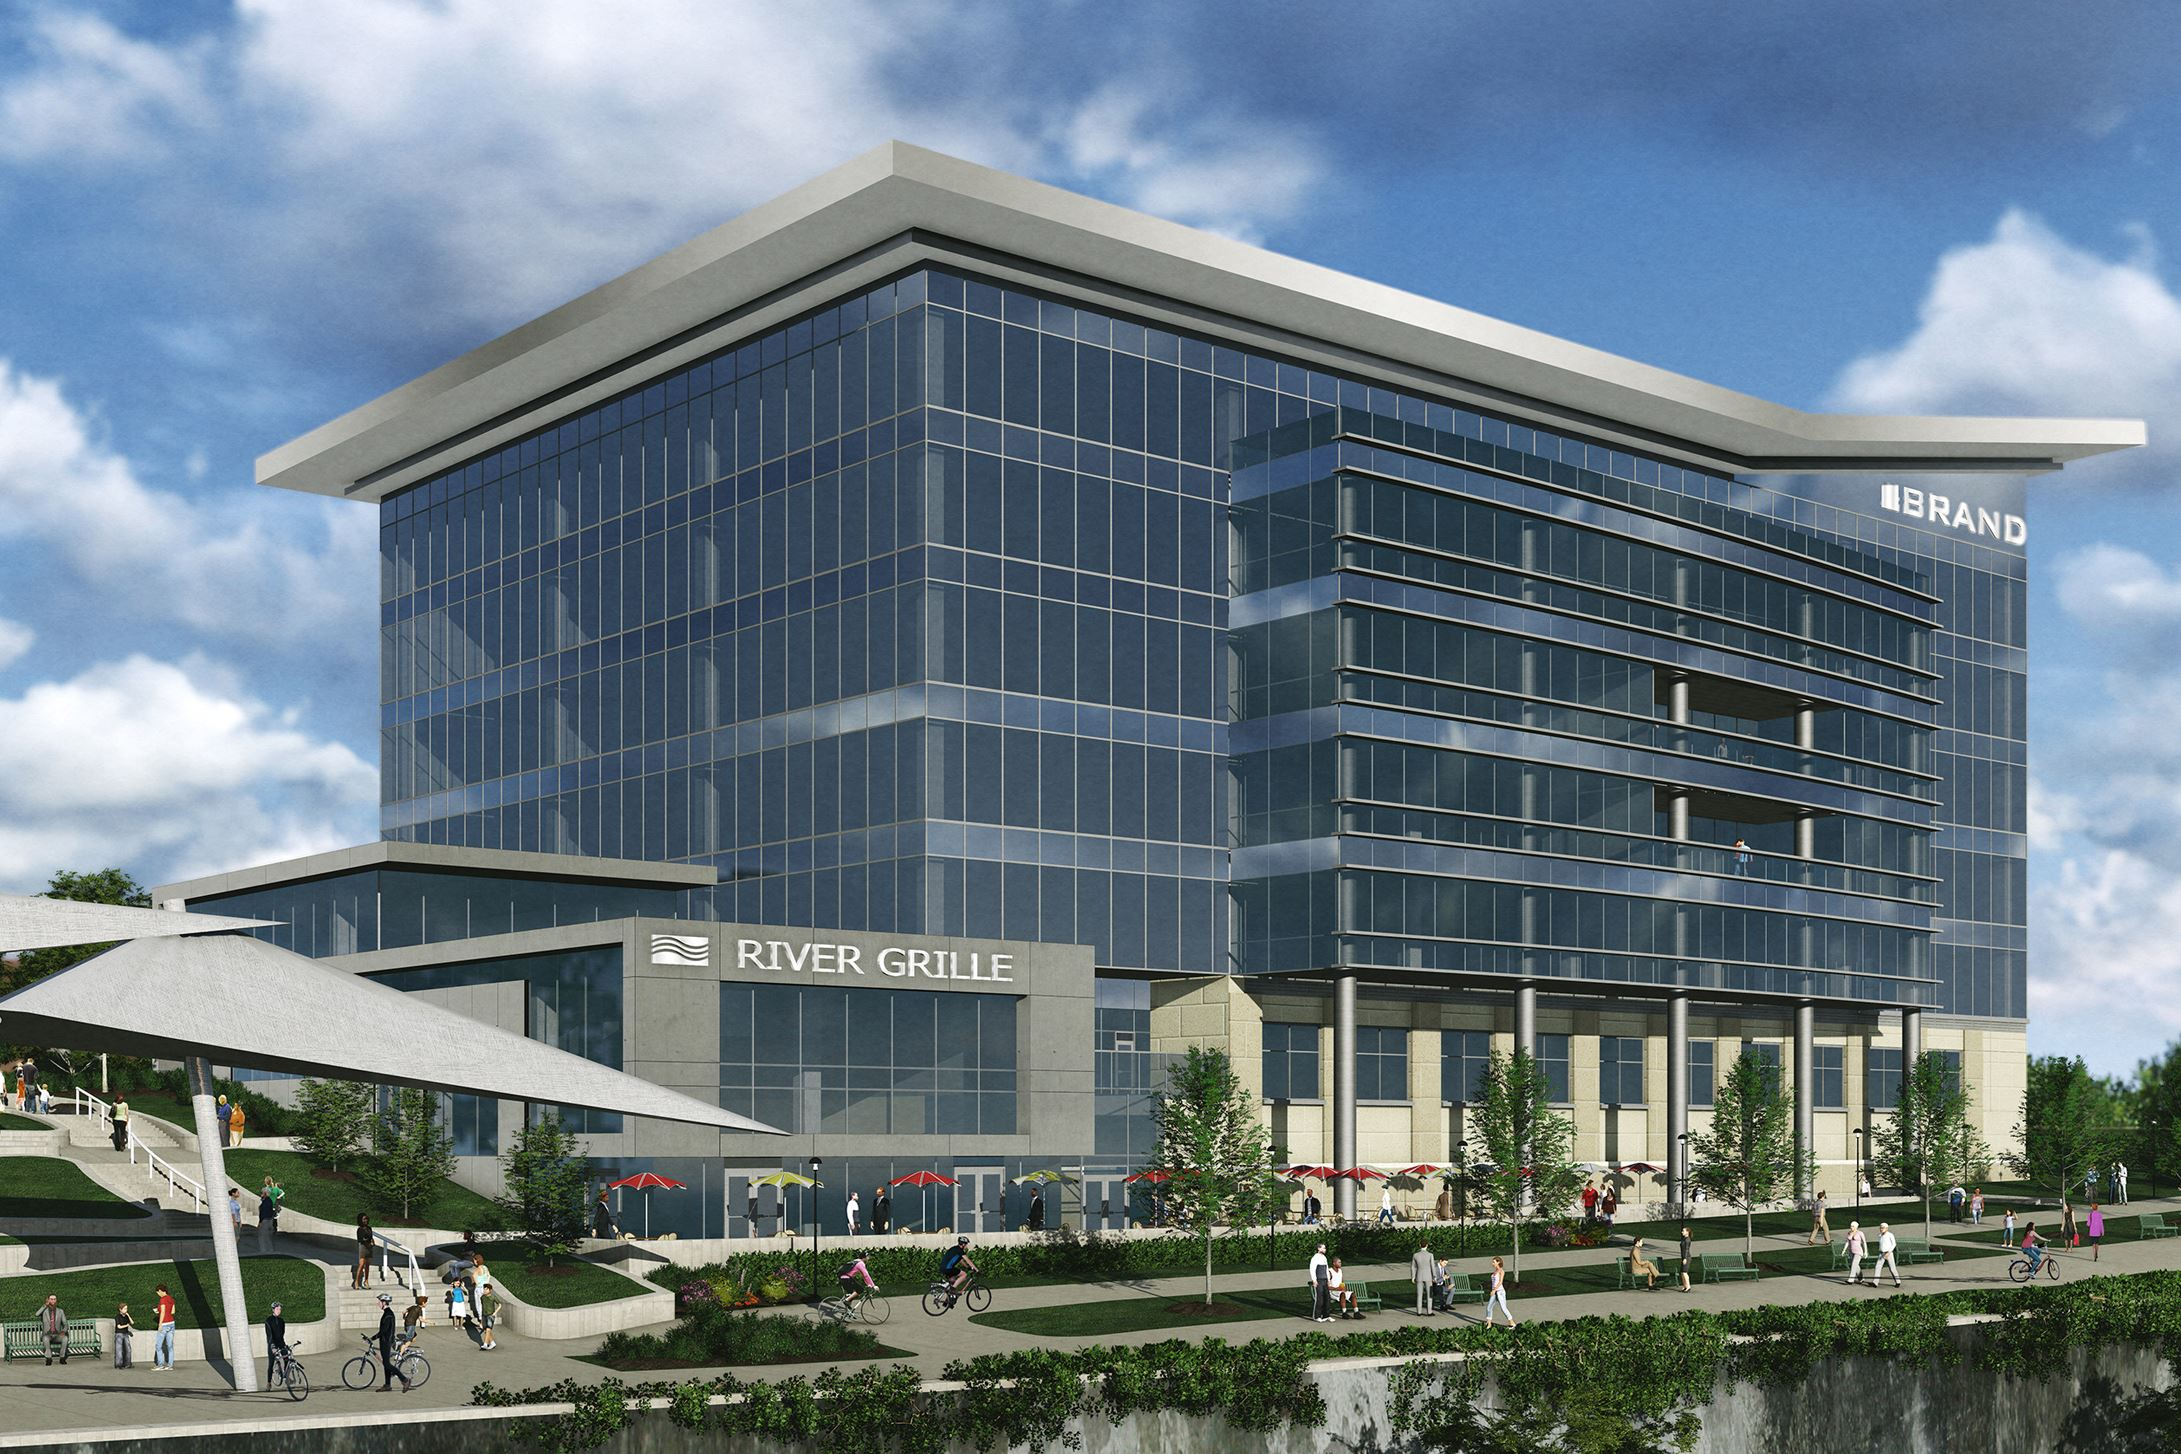 Office building developers busy in pittsburgh pittsburgh for Office building blueprints